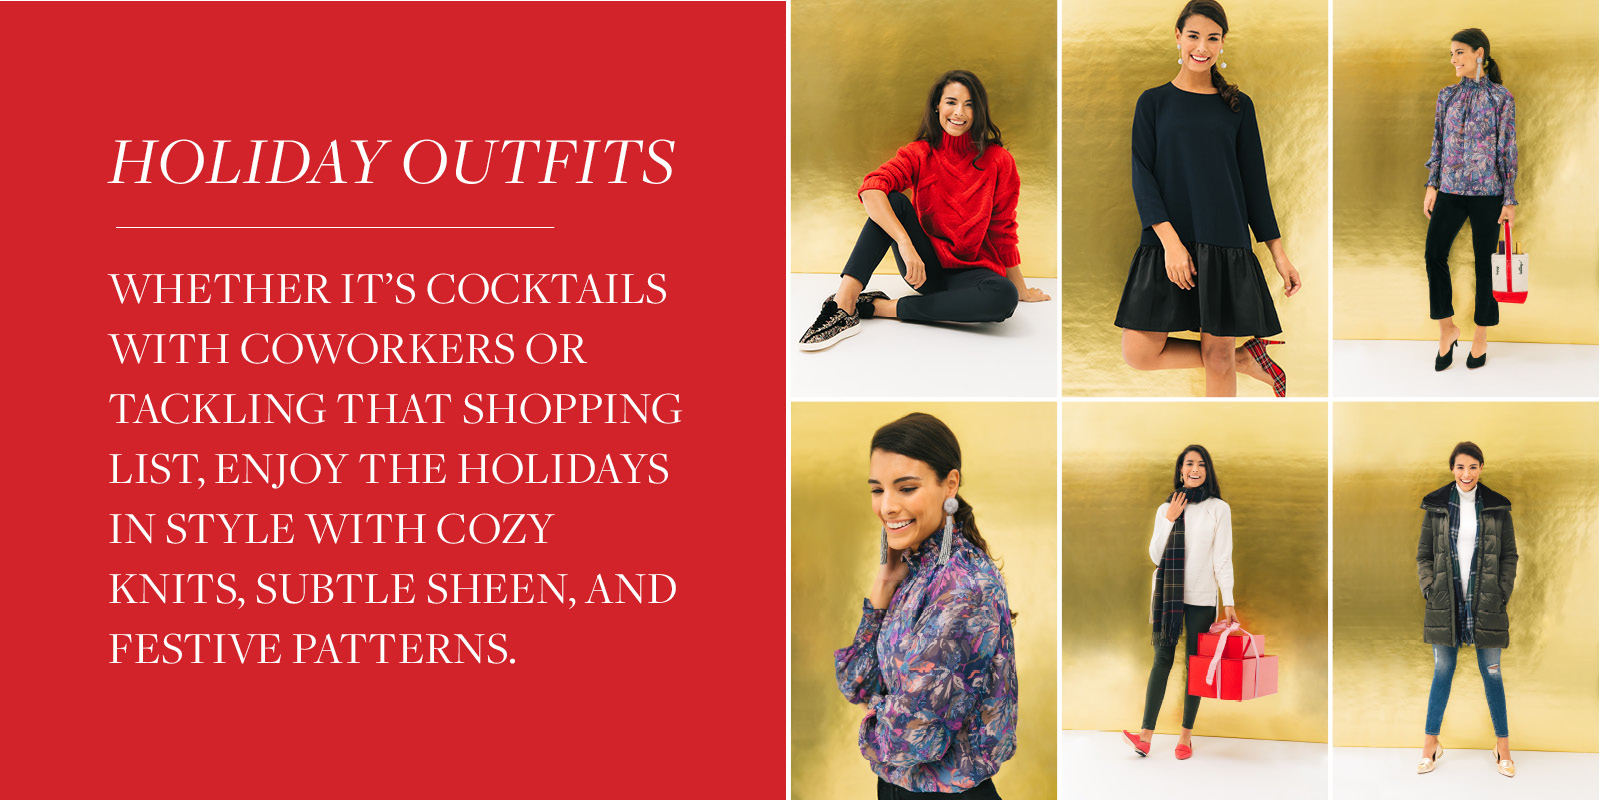 f86915aa1373 Holiday Outfits - Tuckernuck